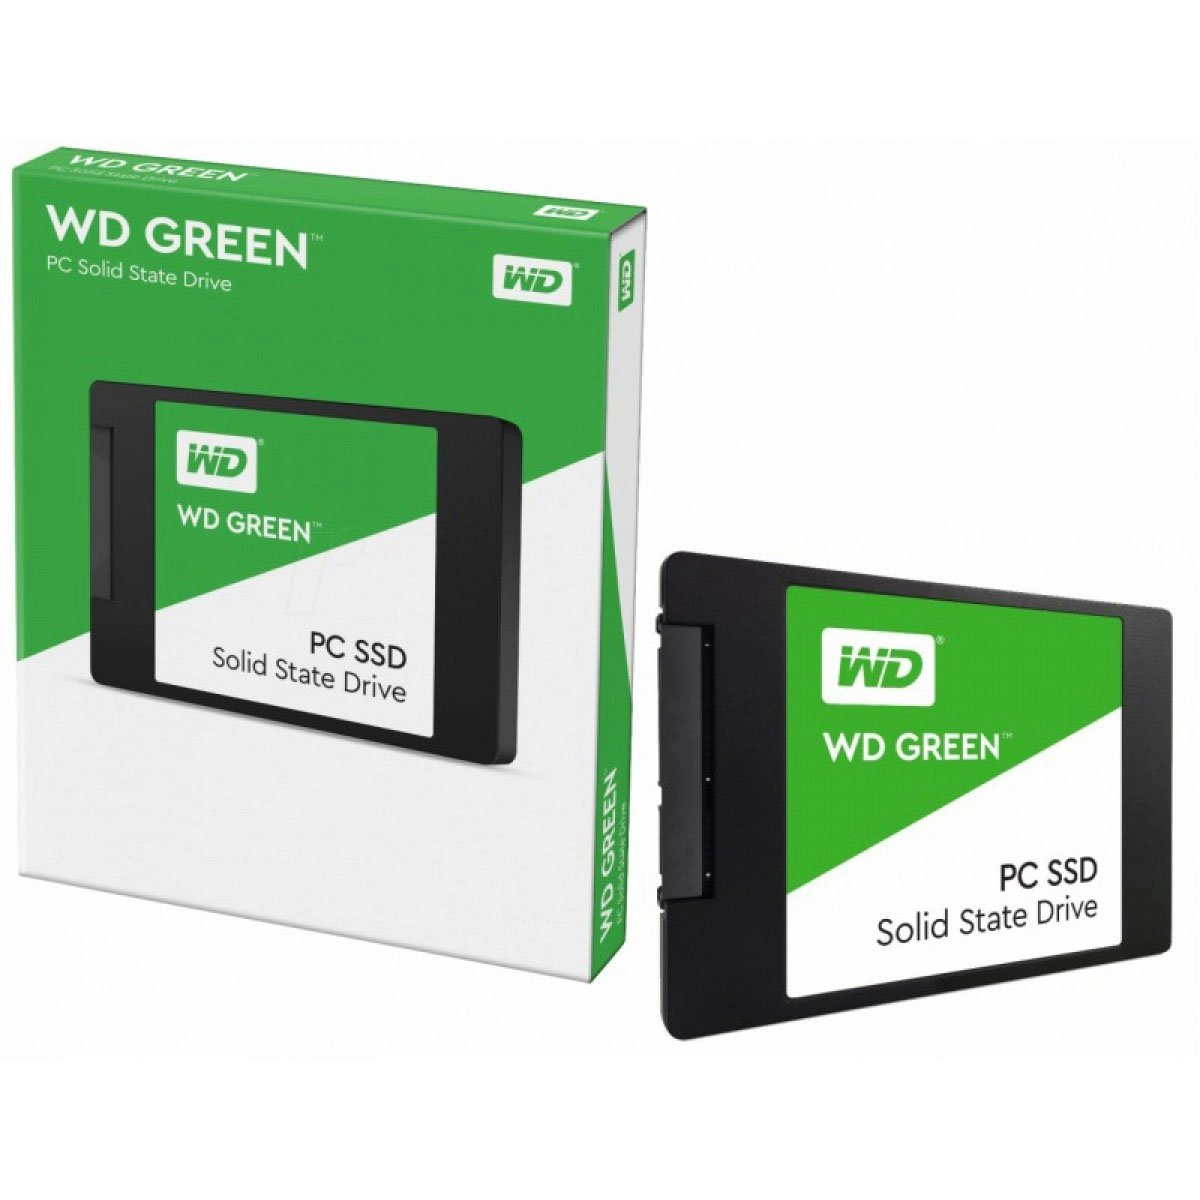 hd sata3 ssd 1tb 25 wd green 50728 2000 202318 1